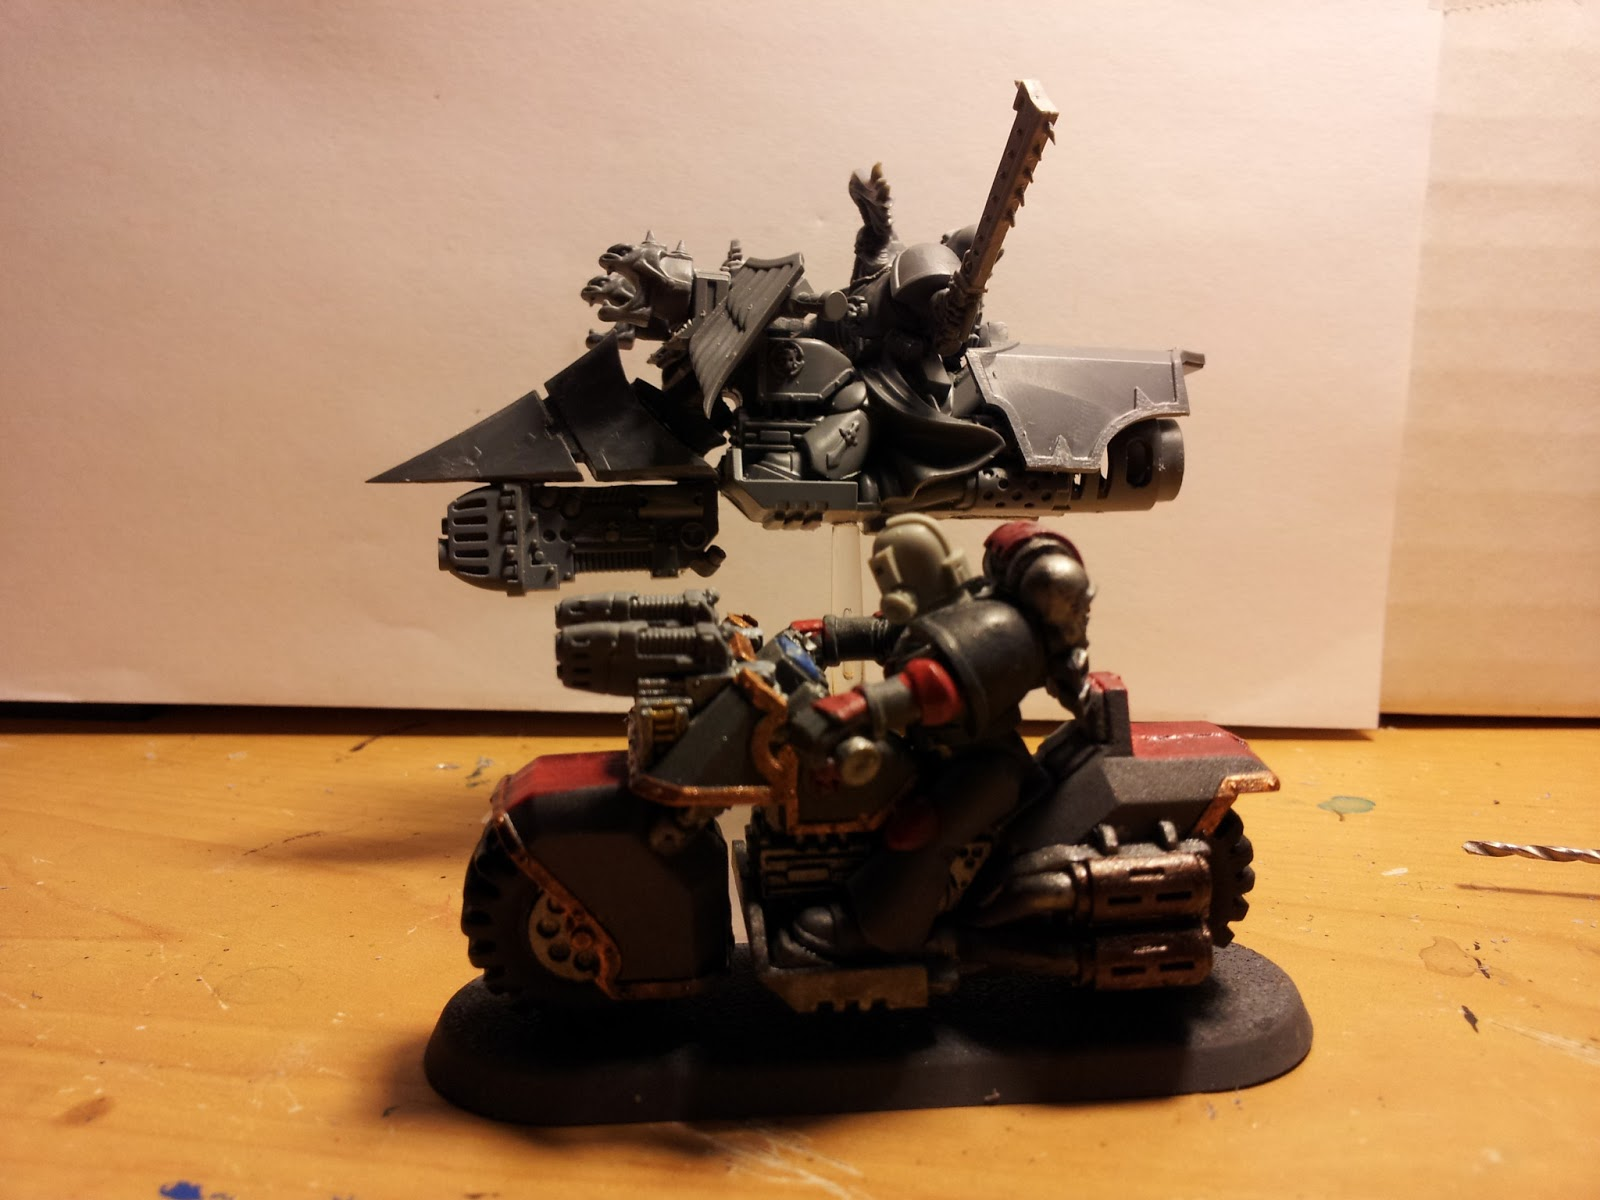 Cool mount/bike models for chaos space marines 20130122_194604